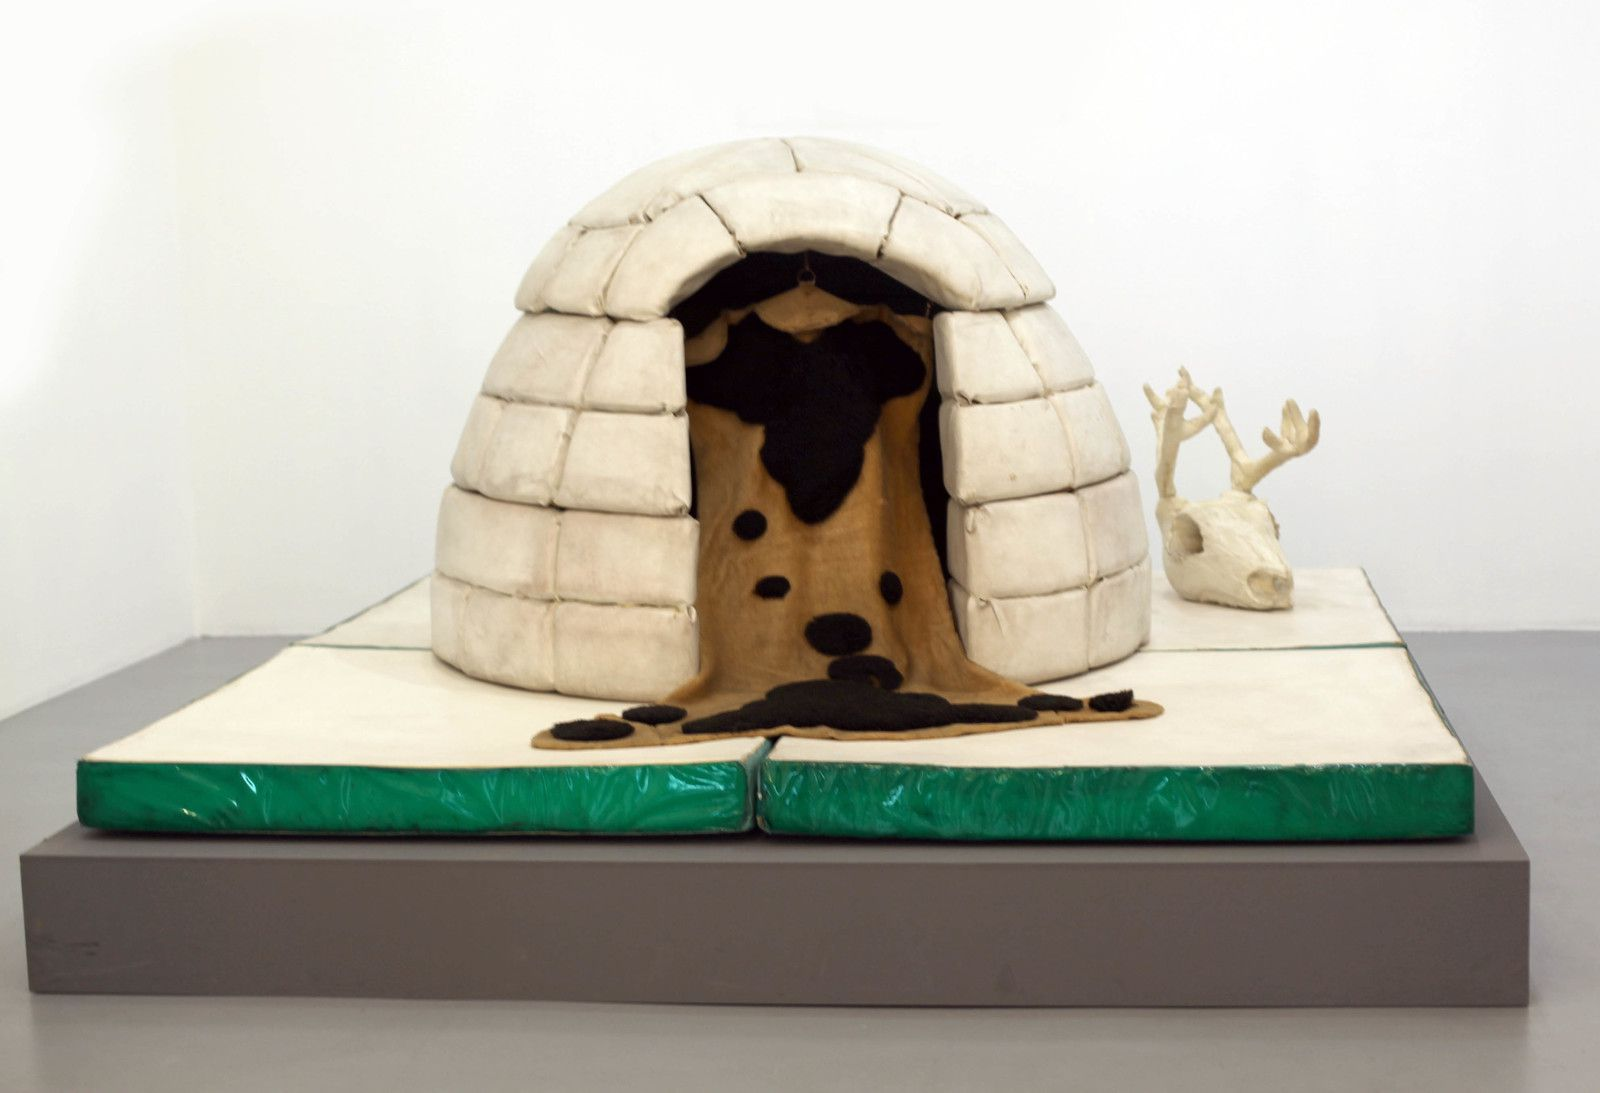 """Igloo"", 1964 de Piero GILARDI - Courtesy de l'artiste et de Galerie Michel Rein Paris © Photo Éric Simon"